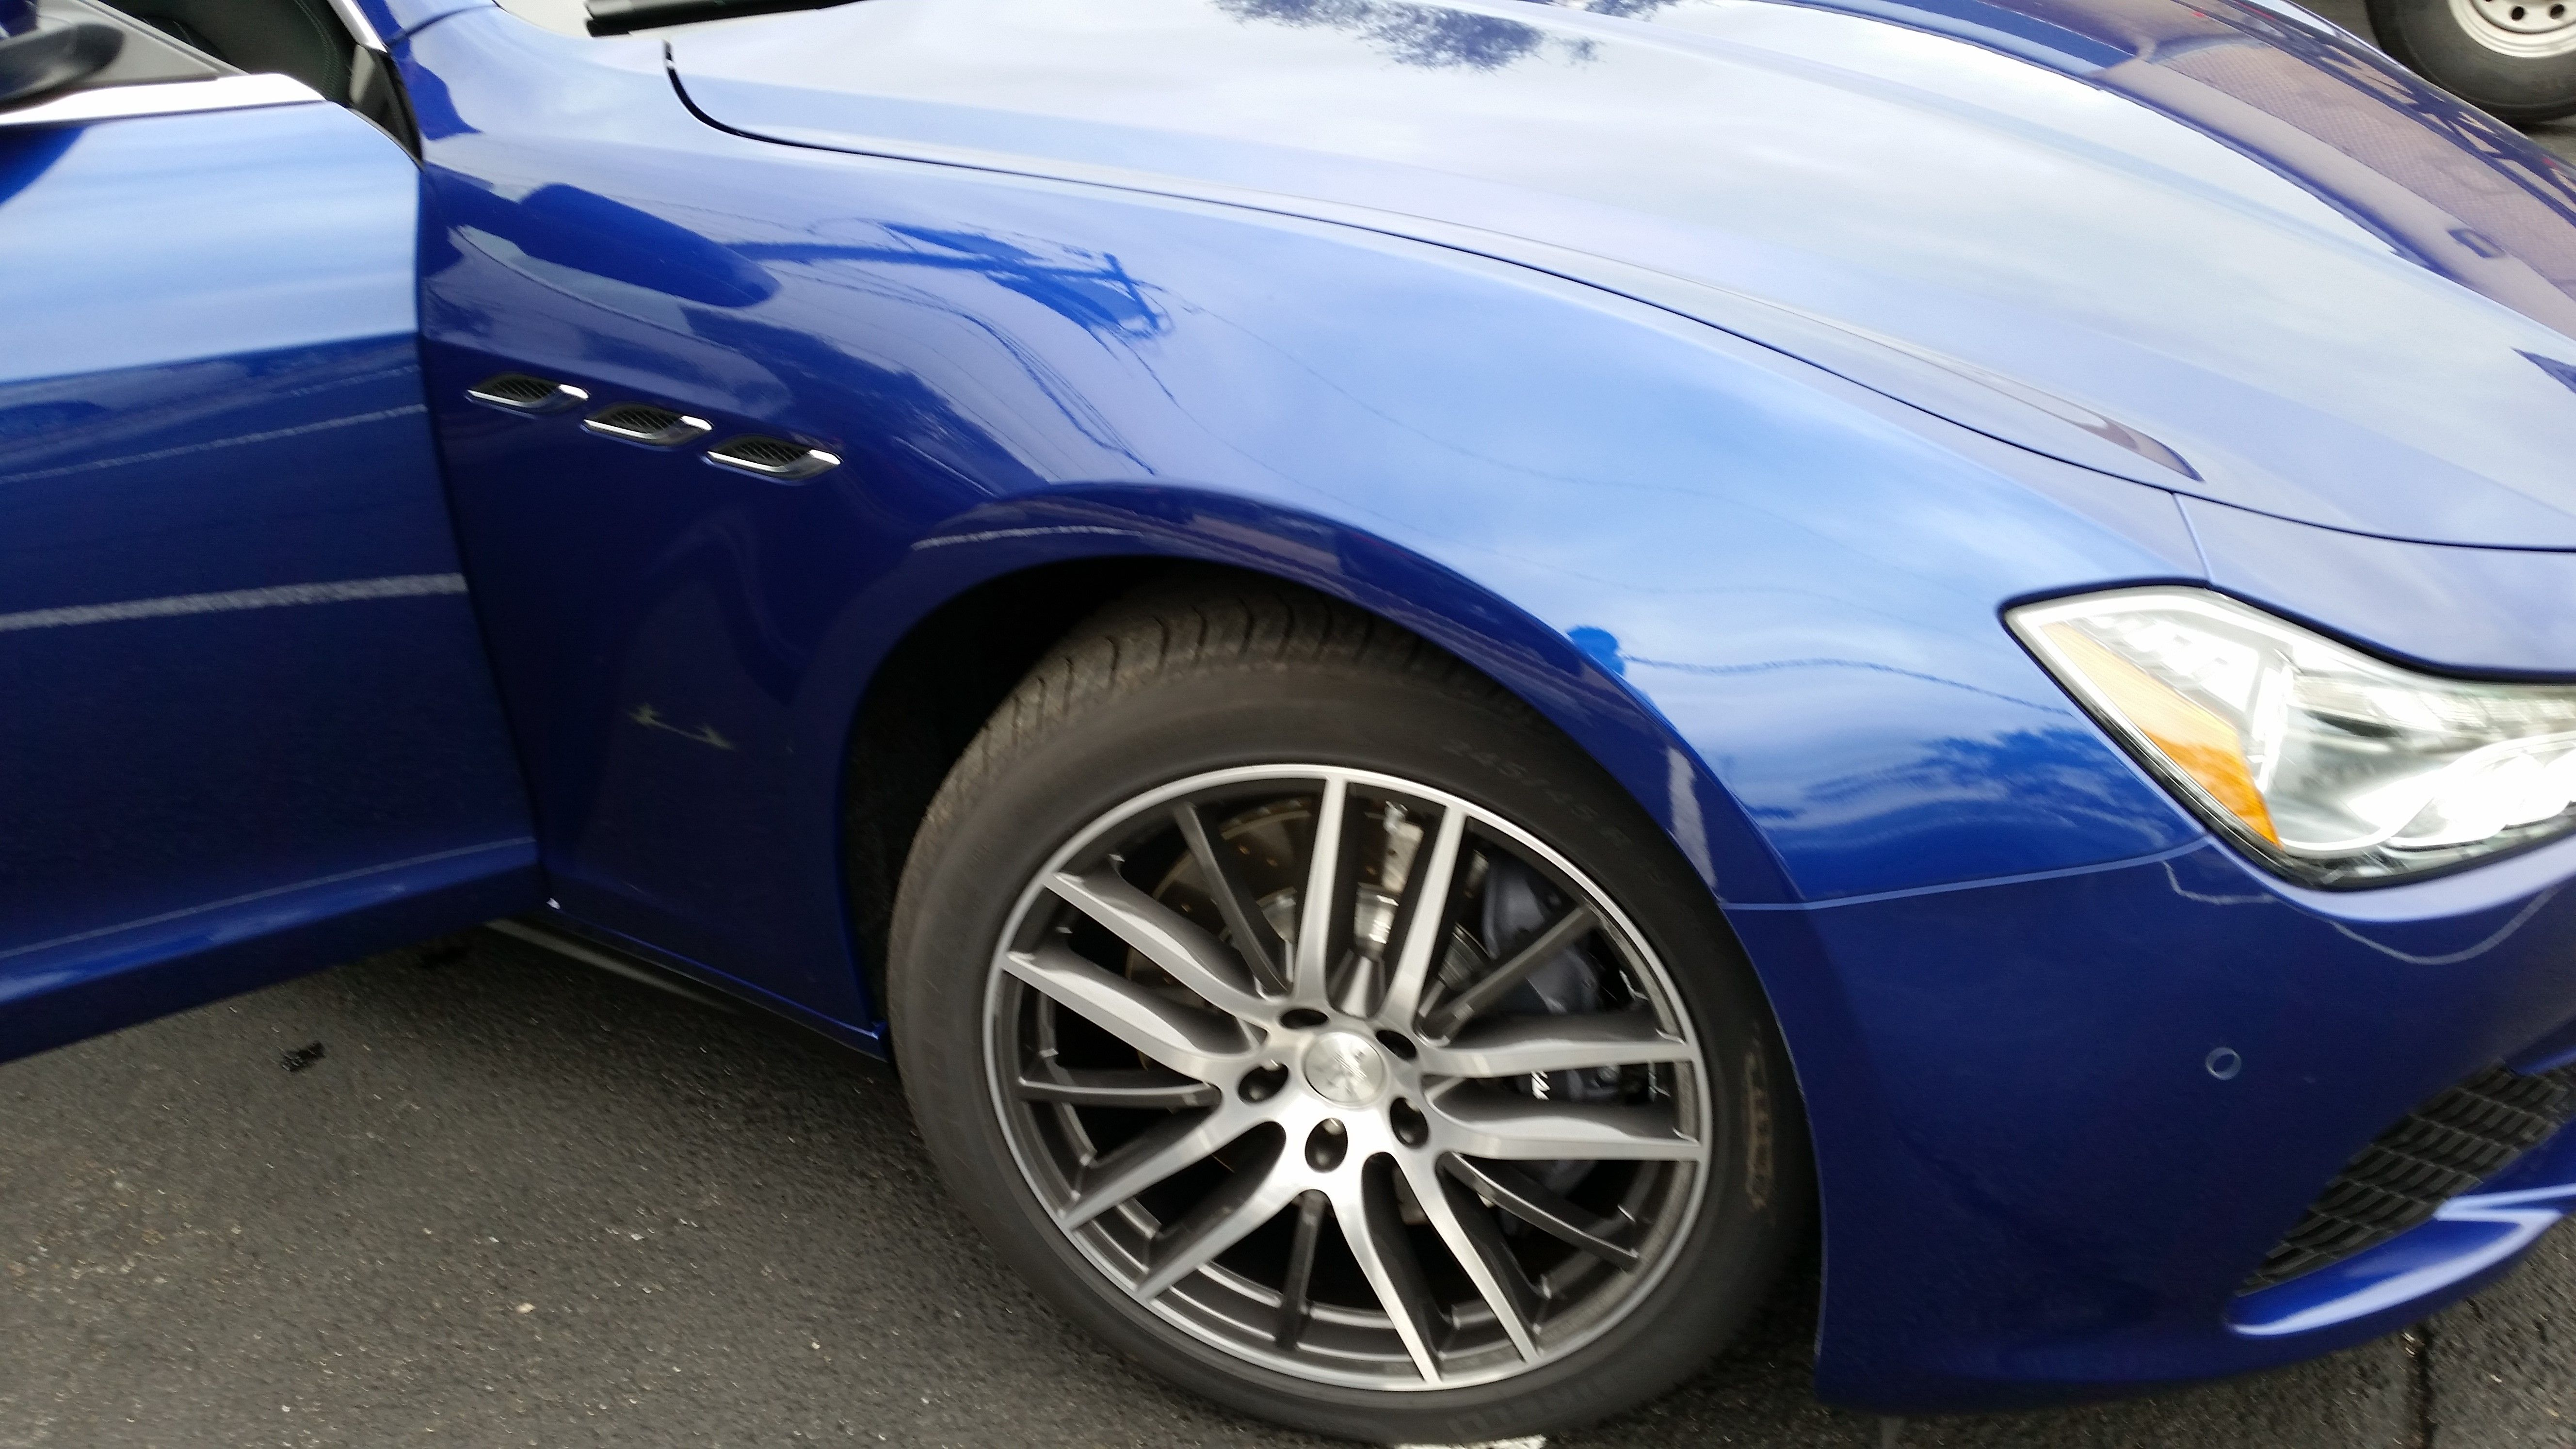 2015 Maserati Ghibli at Maserati of Arlington